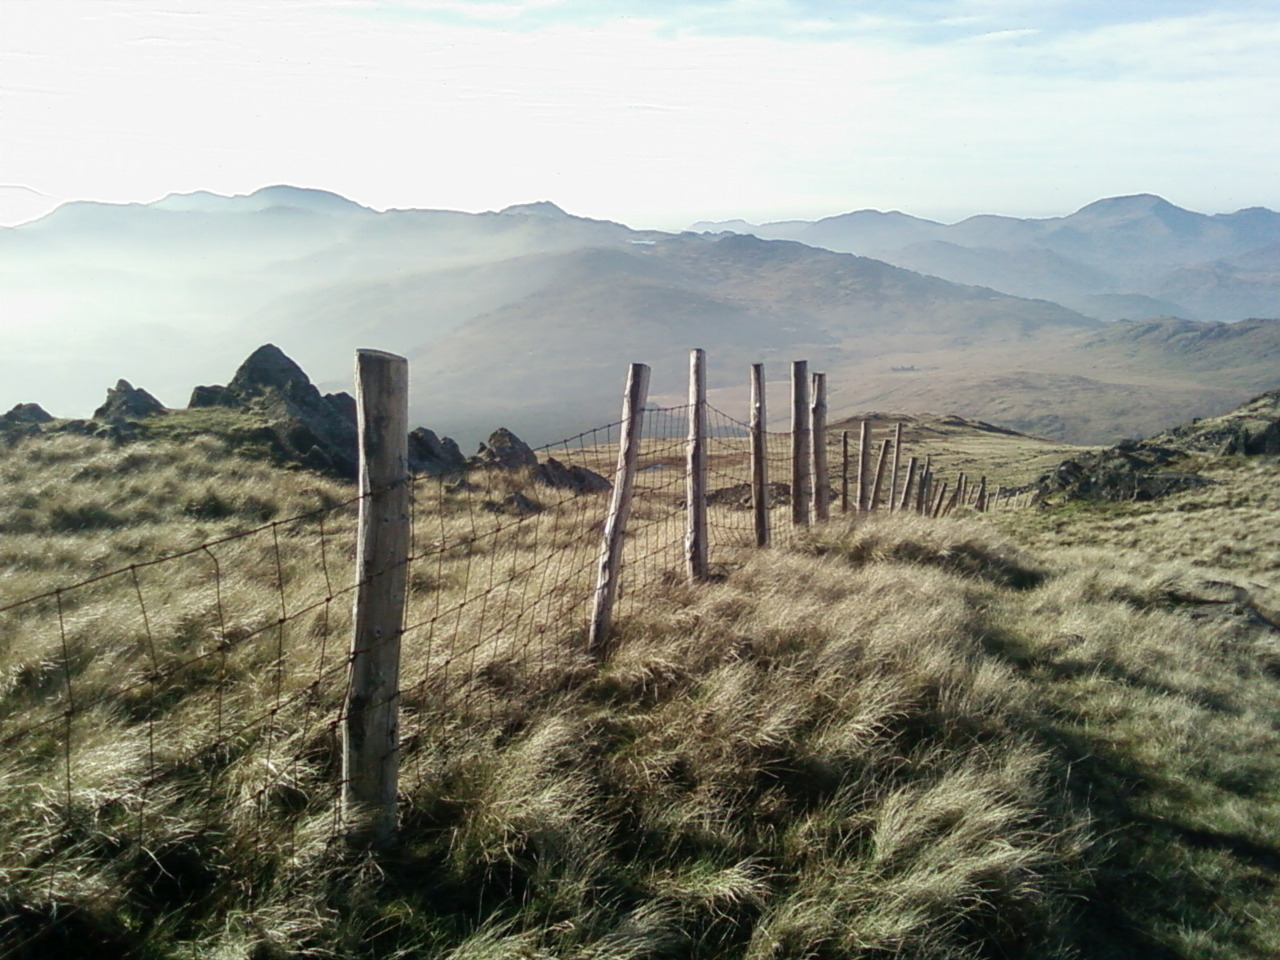 Snowdonia, North Wales, November 2011. Submitted by Ian. Thank you, Ian. Please send me a note to your work online when you get a chance and I will link this to you.